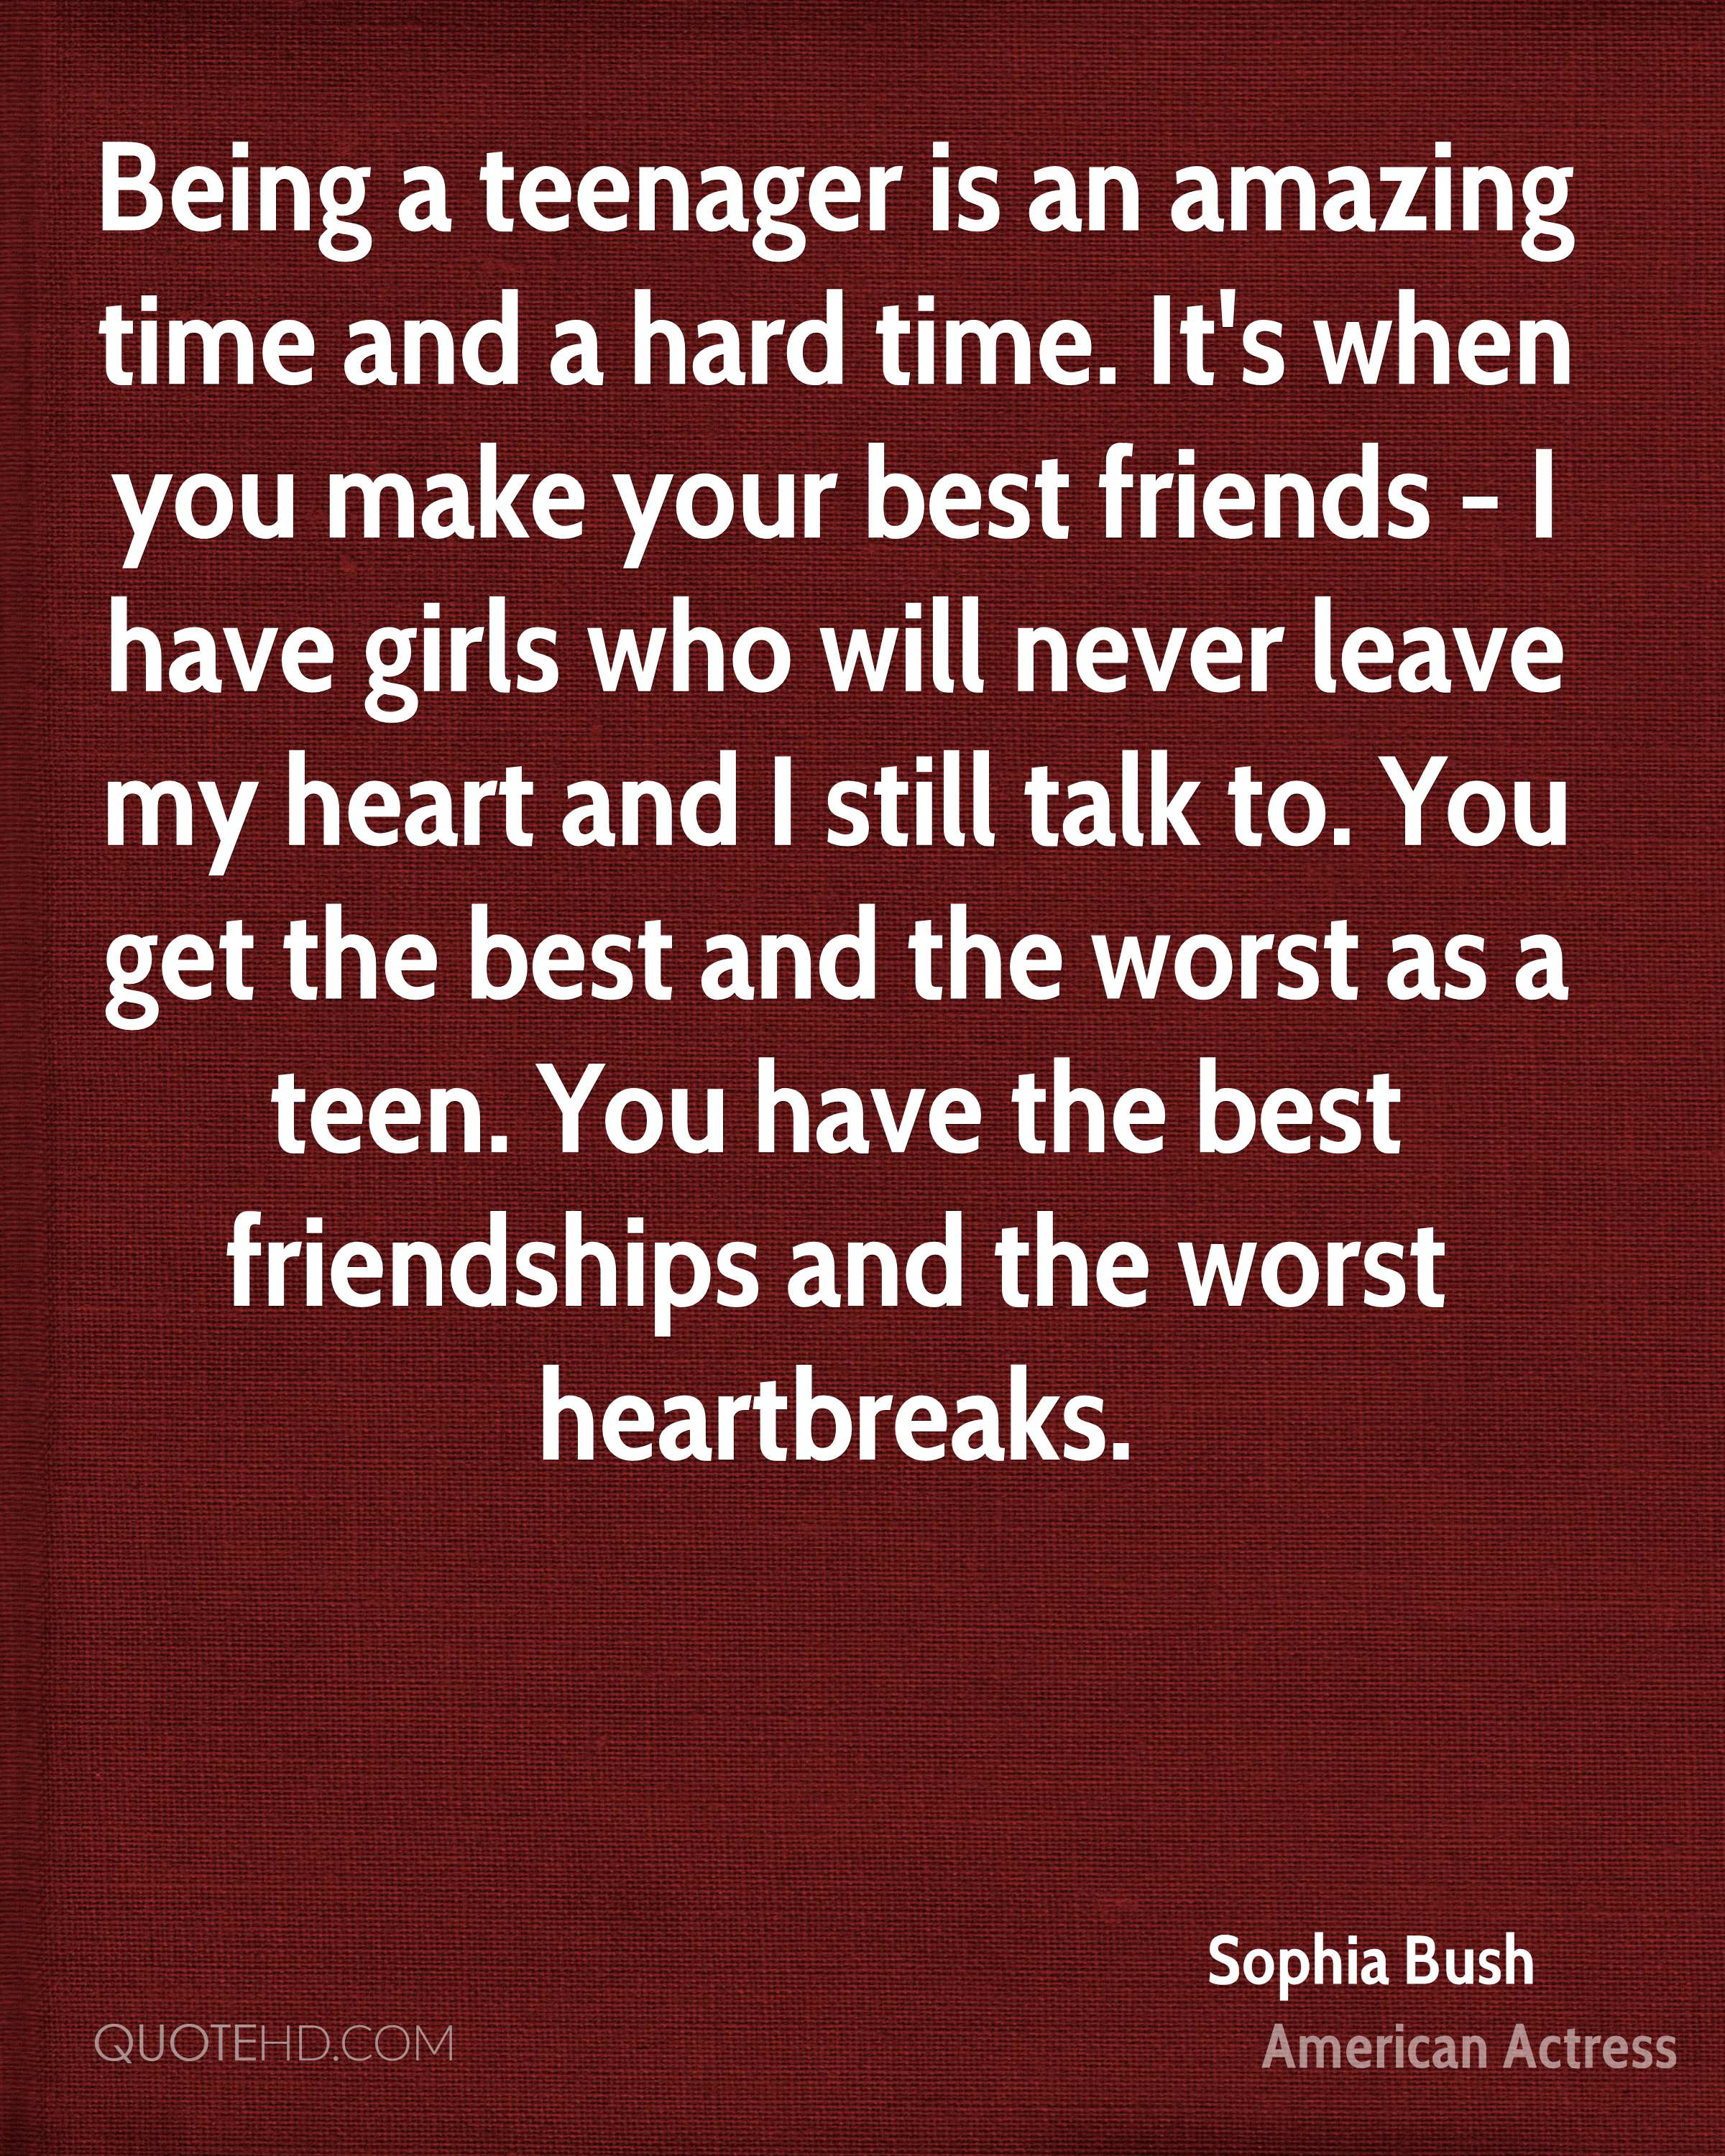 Being a teenager is an amazing time and a hard time. It's when you make your best friends - I have girls who will never leave my heart and I still talk to. You get the best and the worst as a teen. You have the best friendships and the worst heartbreaks.